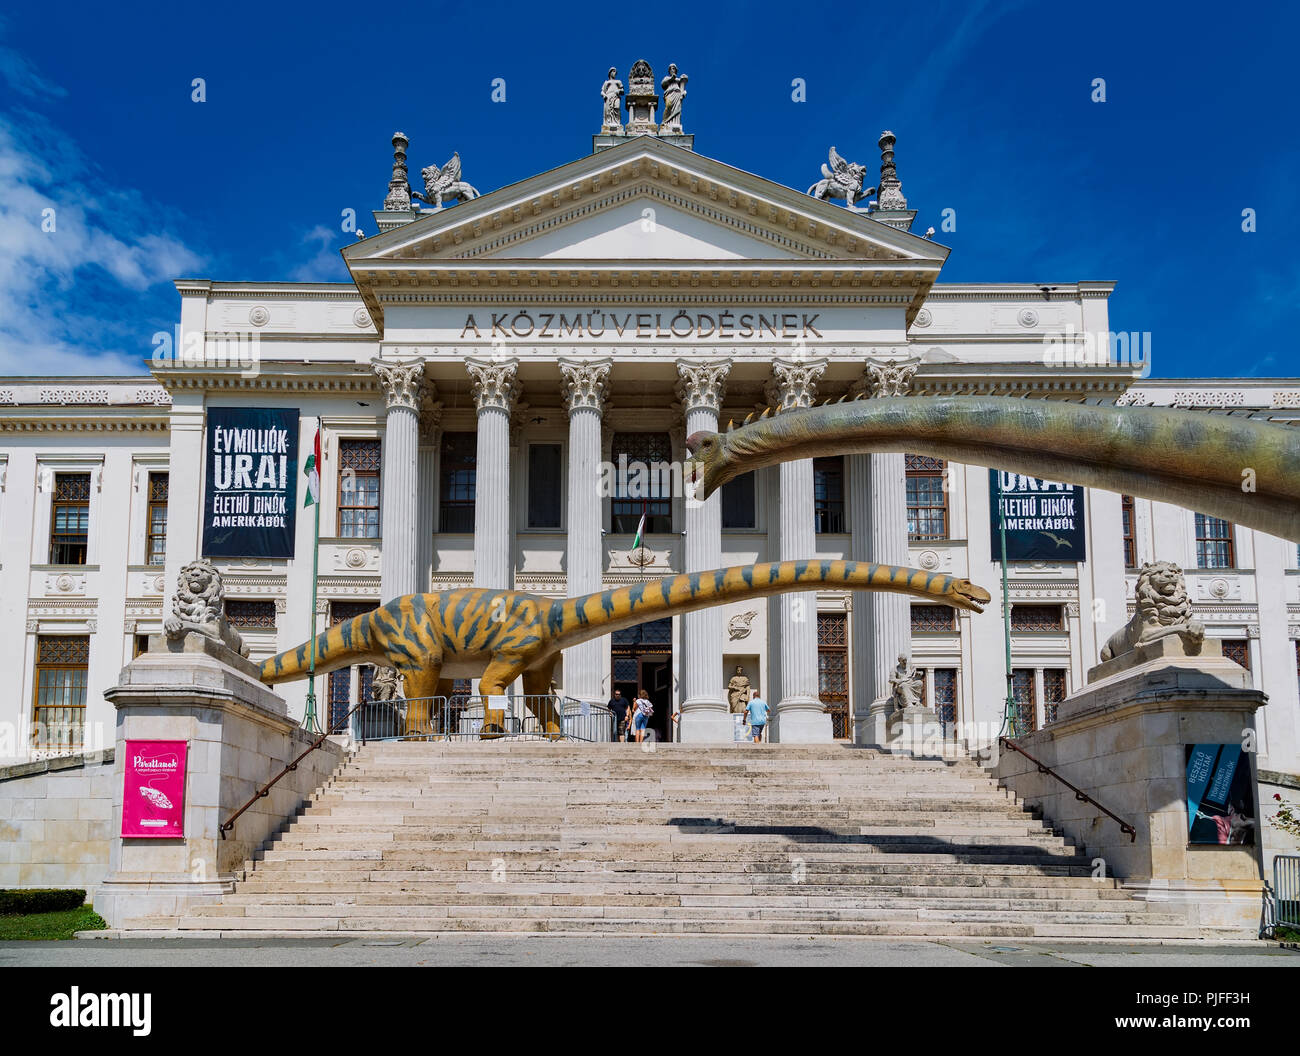 Summer sight at the Mora Ferenc Museum in Szeged. Dinosaurs models in front of the entrance of the neoclassical building. - Stock Image